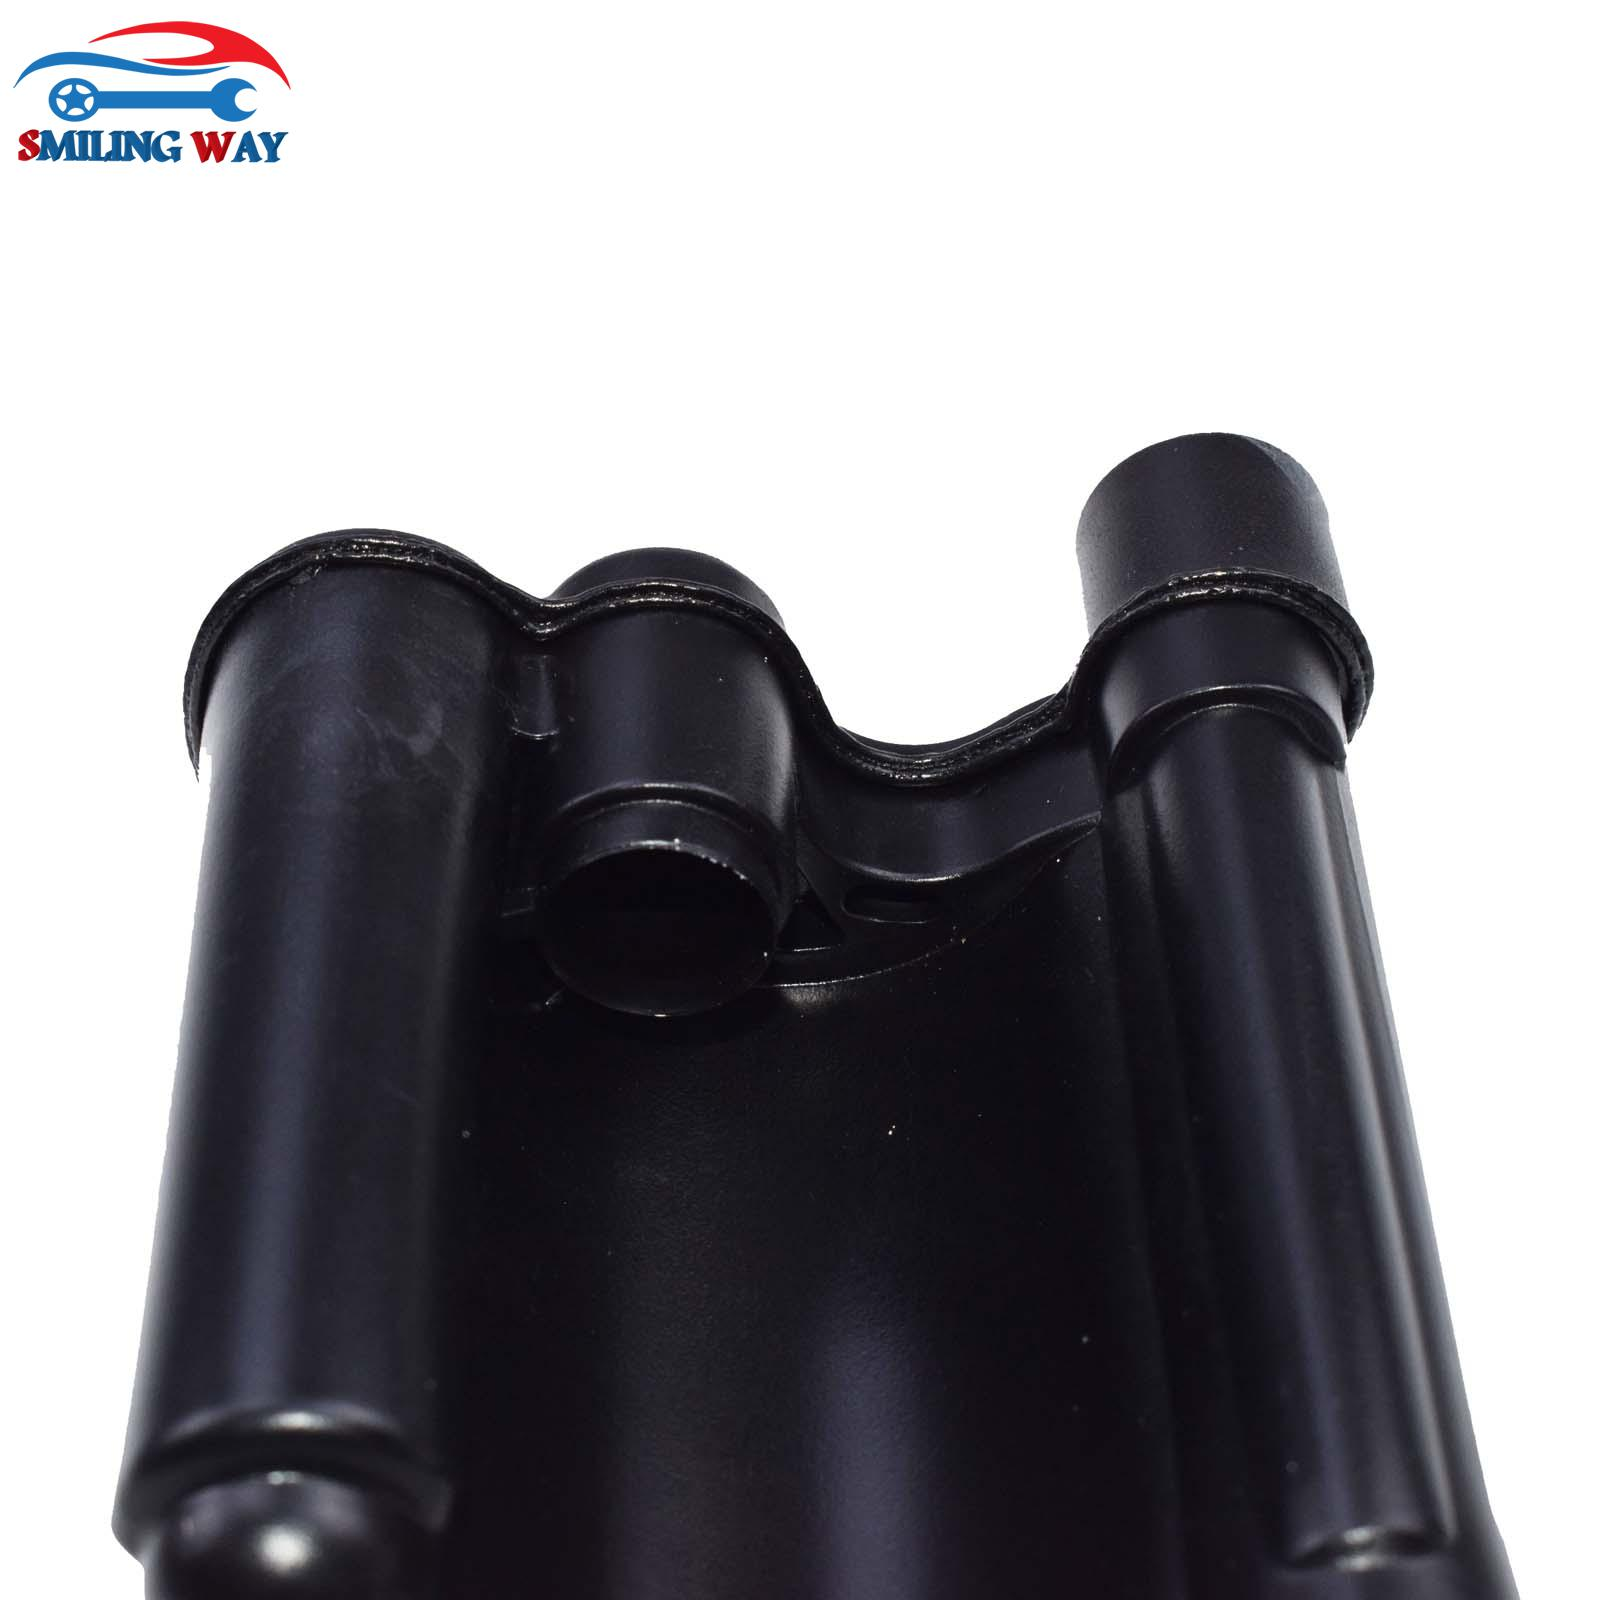 1999 toyota fuel filter smiling way in tank fuel filter for toyota corolla 1998 1999 2000 1999 toyota camry fuel filter change toyota corolla 1998 1999 2000